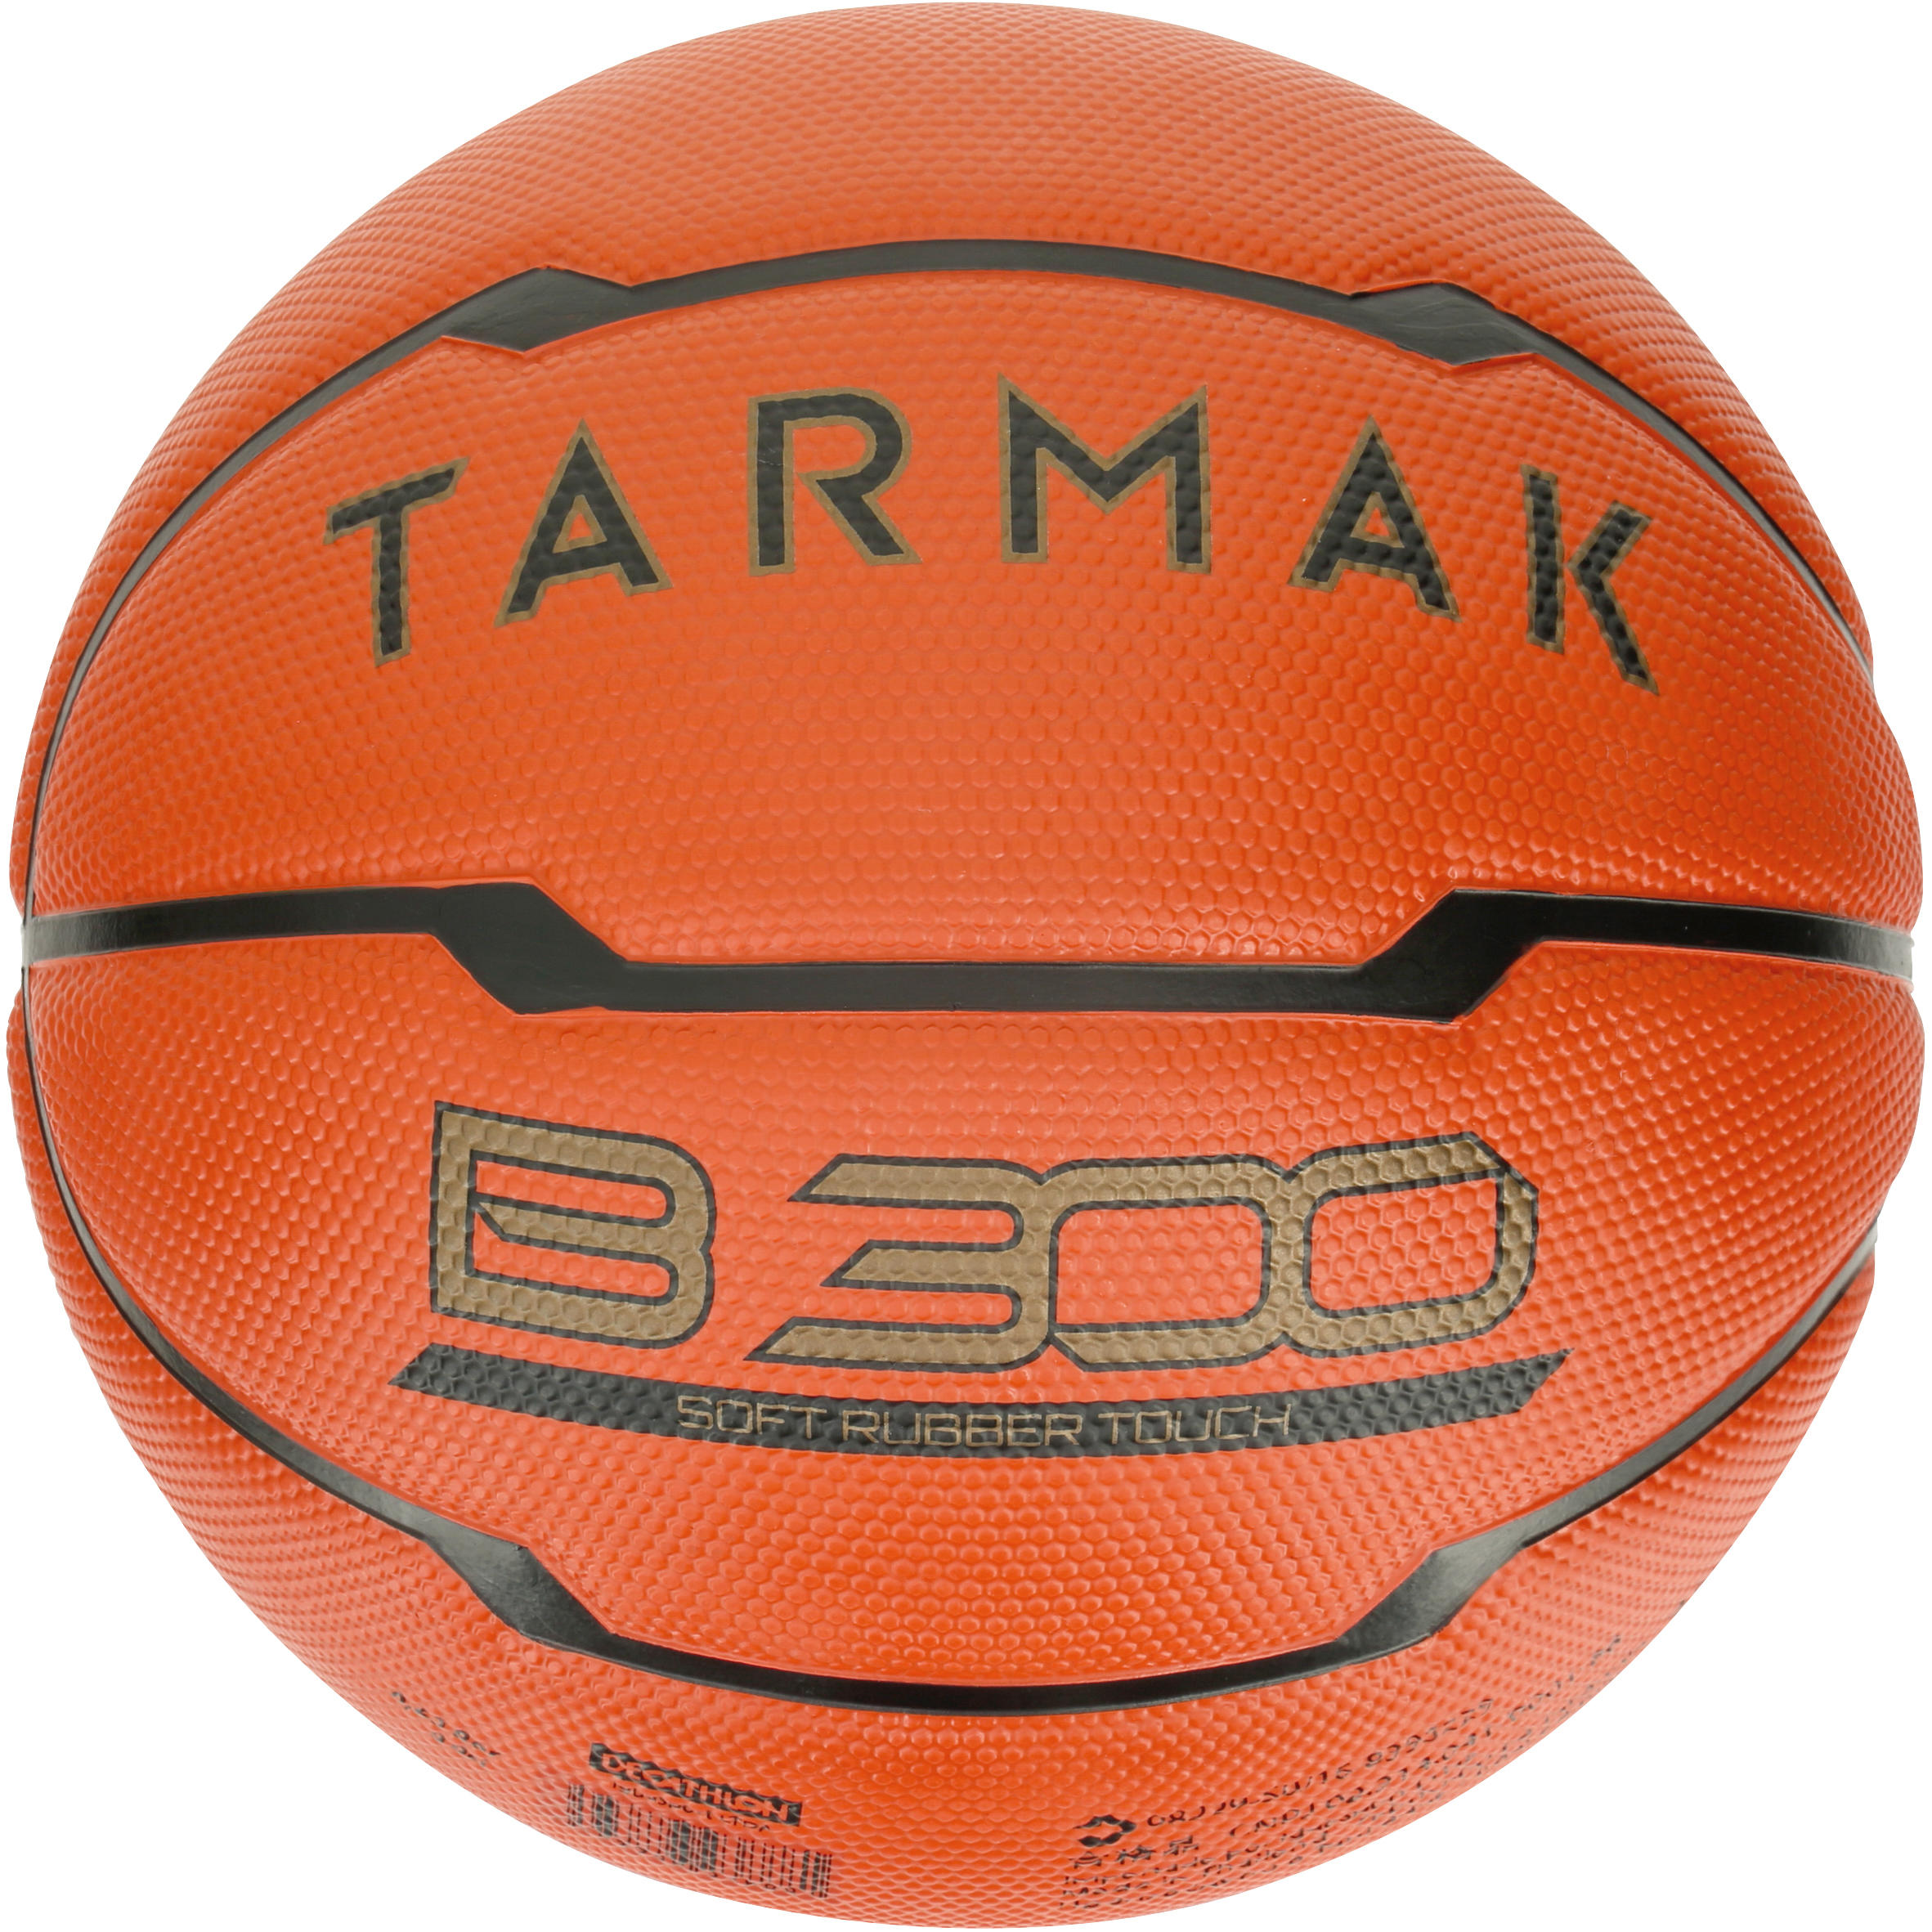 B300 Size 5 Kids' Basketball - Orange